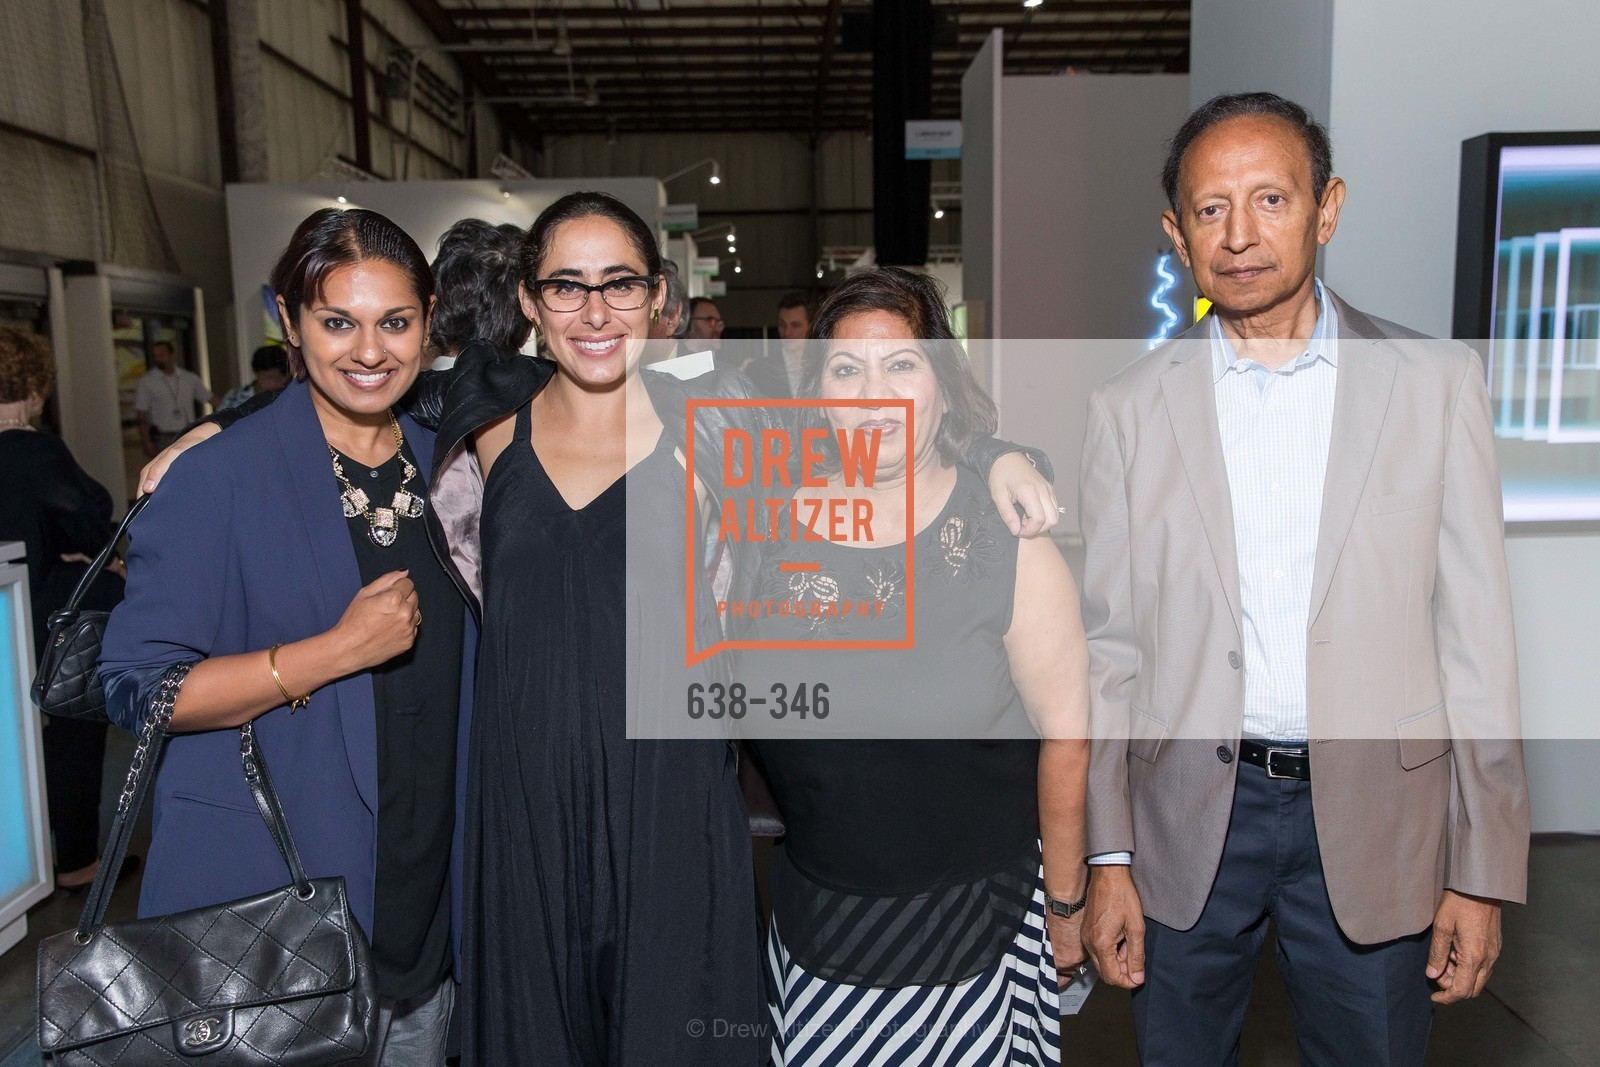 Rashmi Bachireddy, Brooke Gerson, Bima Kumar, Vijay Kumar, Art Miami Presents: Art Silicon Valley, San Mateo County Event Center. 1346 Saratoga Dr, October 8th, 2015,Drew Altizer, Drew Altizer Photography, full-service agency, private events, San Francisco photographer, photographer california